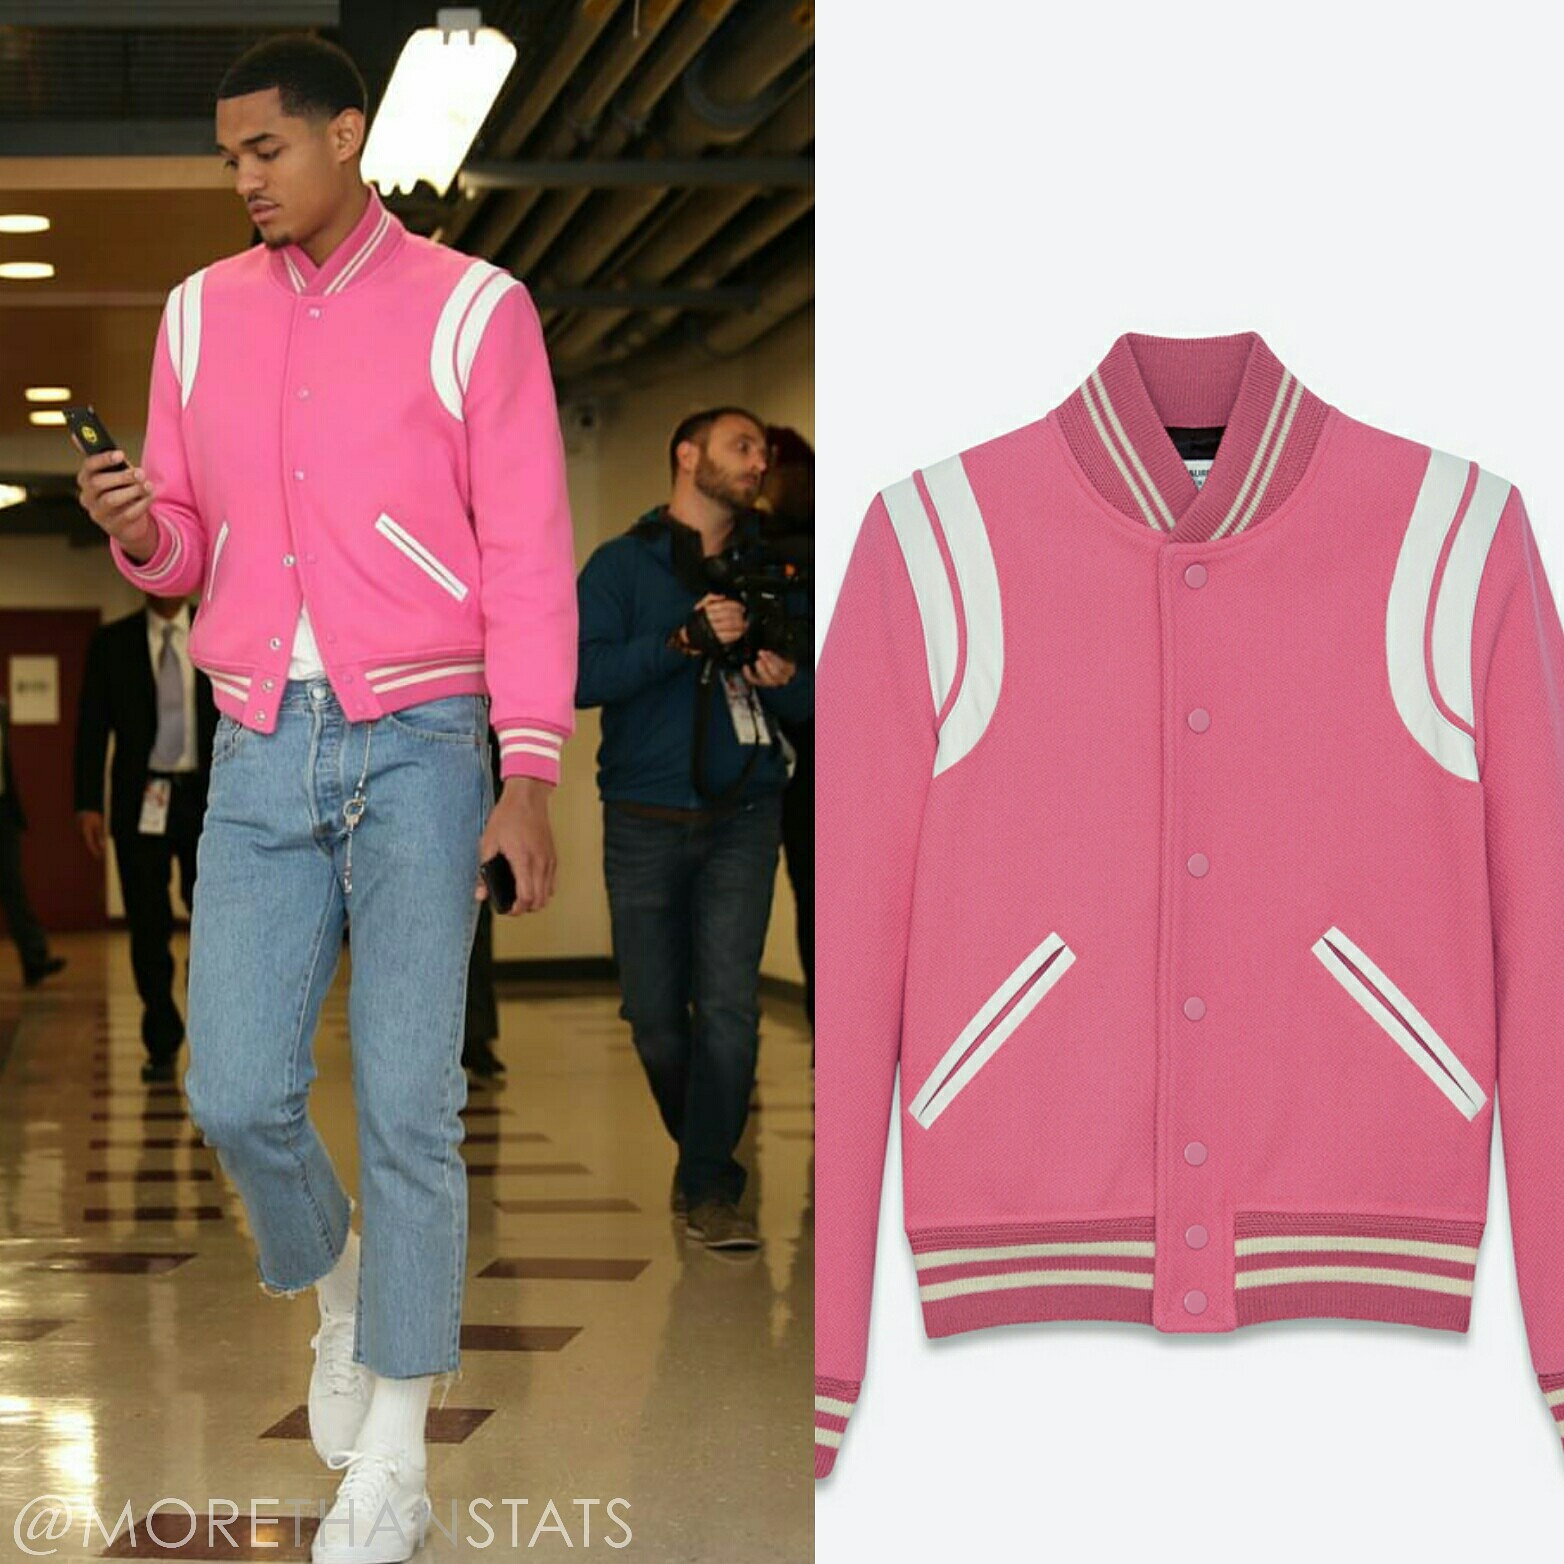 STYLE: NBA Jordan Clarkson Wears Saint Laurent Pink Varsity Jacket